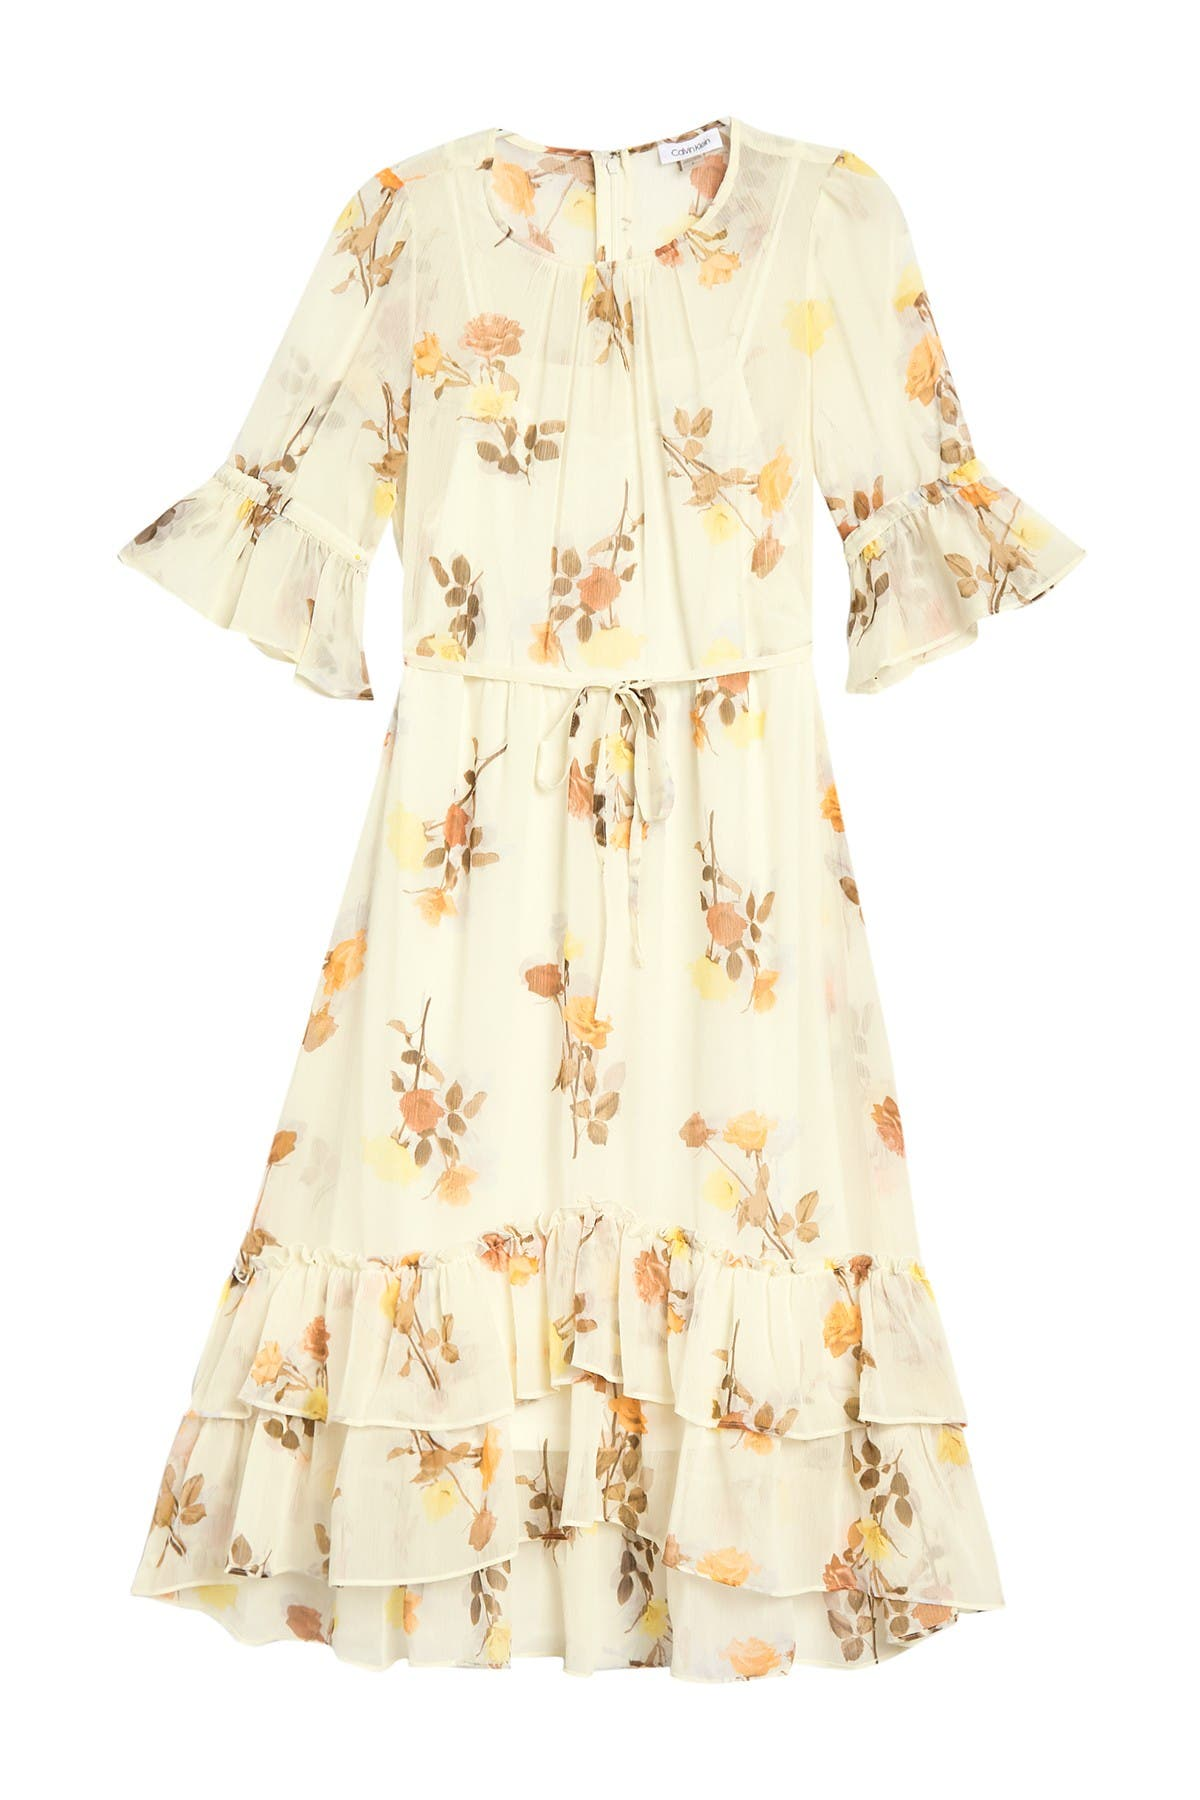 Image of Calvin Klein Floral 3/4 Sleeve Ruffled Chiffon Dress